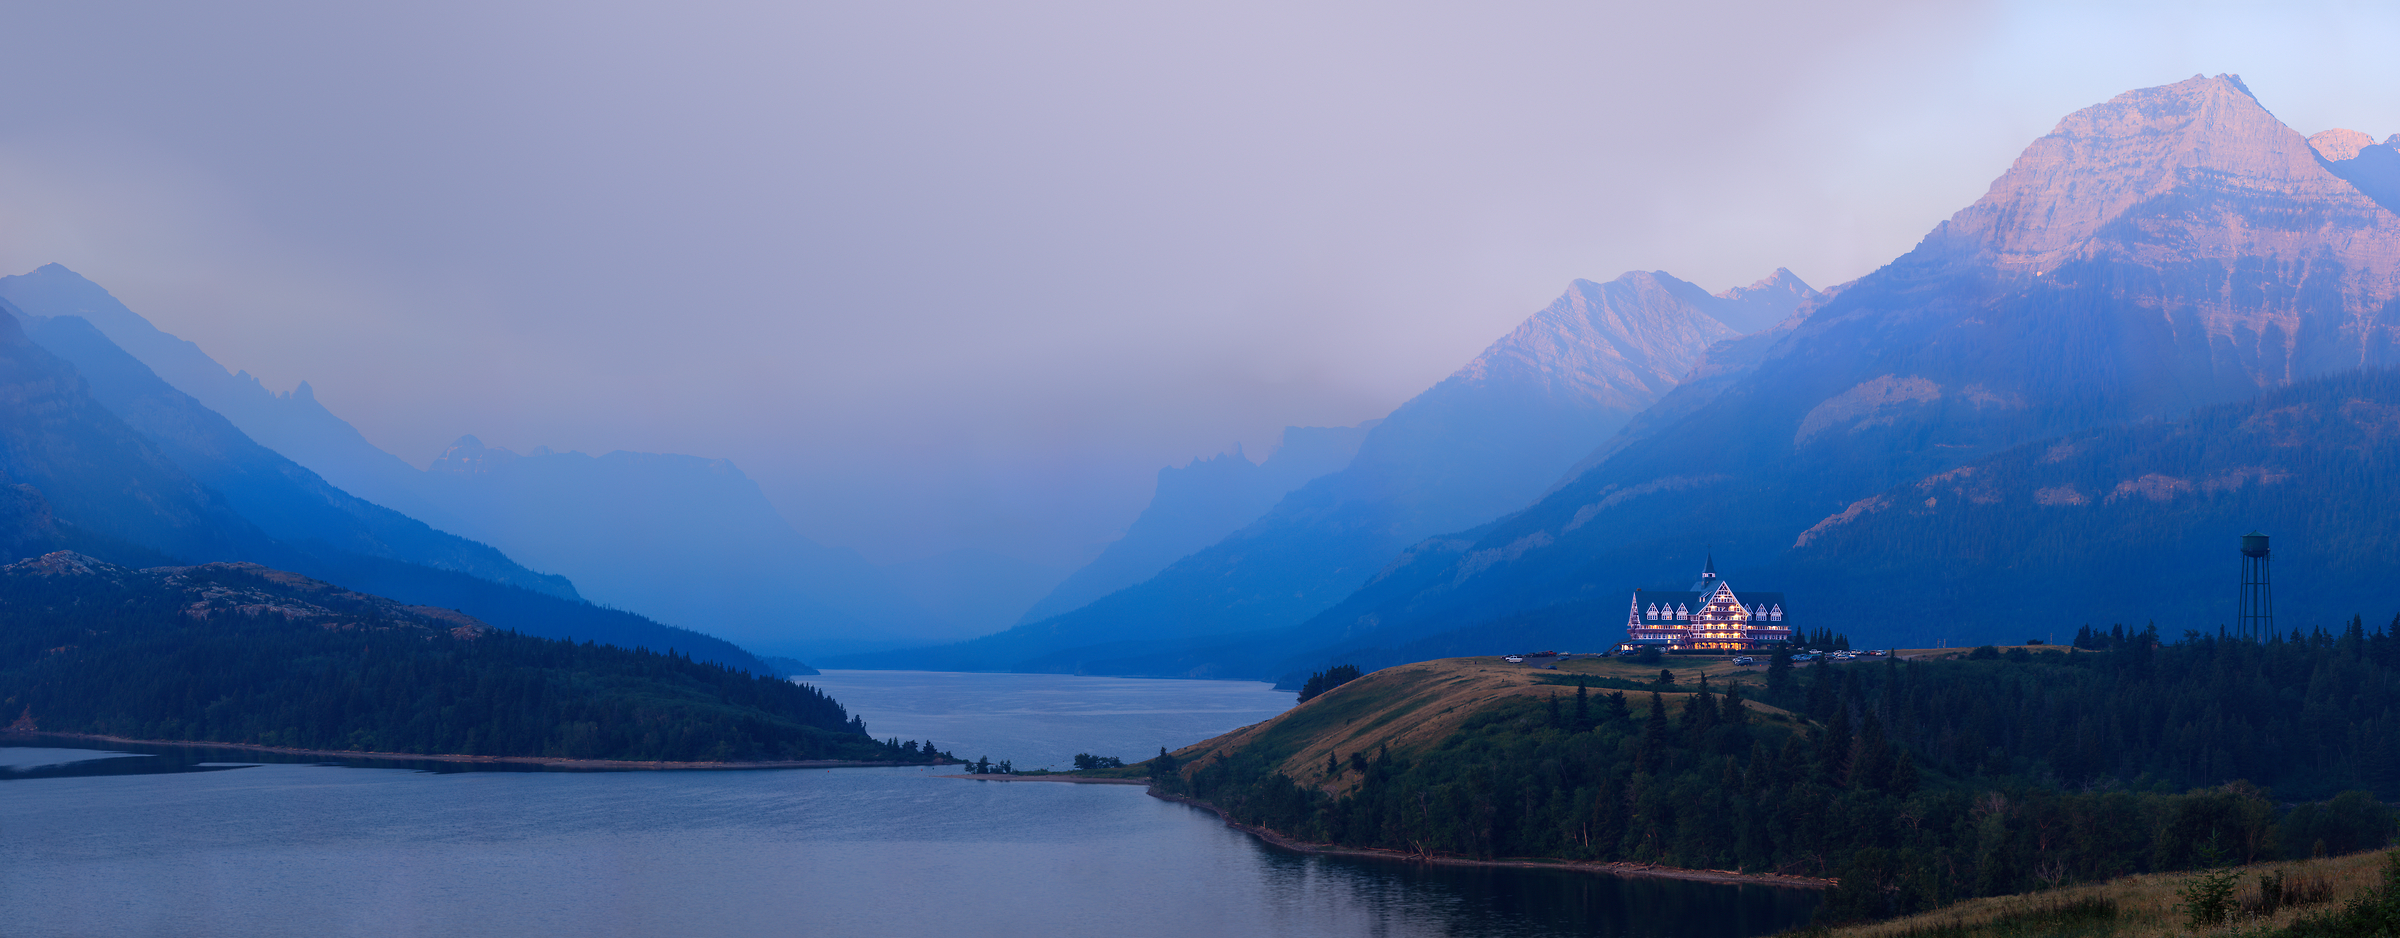 4,650 megapixels! A very high resolution, large-format VAST photo print of the Prince of Wales Hotel in Waterton Lakes National Park with smoke from a wildfire in the valley in the background; fine art landscape photograph created by Scott Dimond in Alberta, Canada